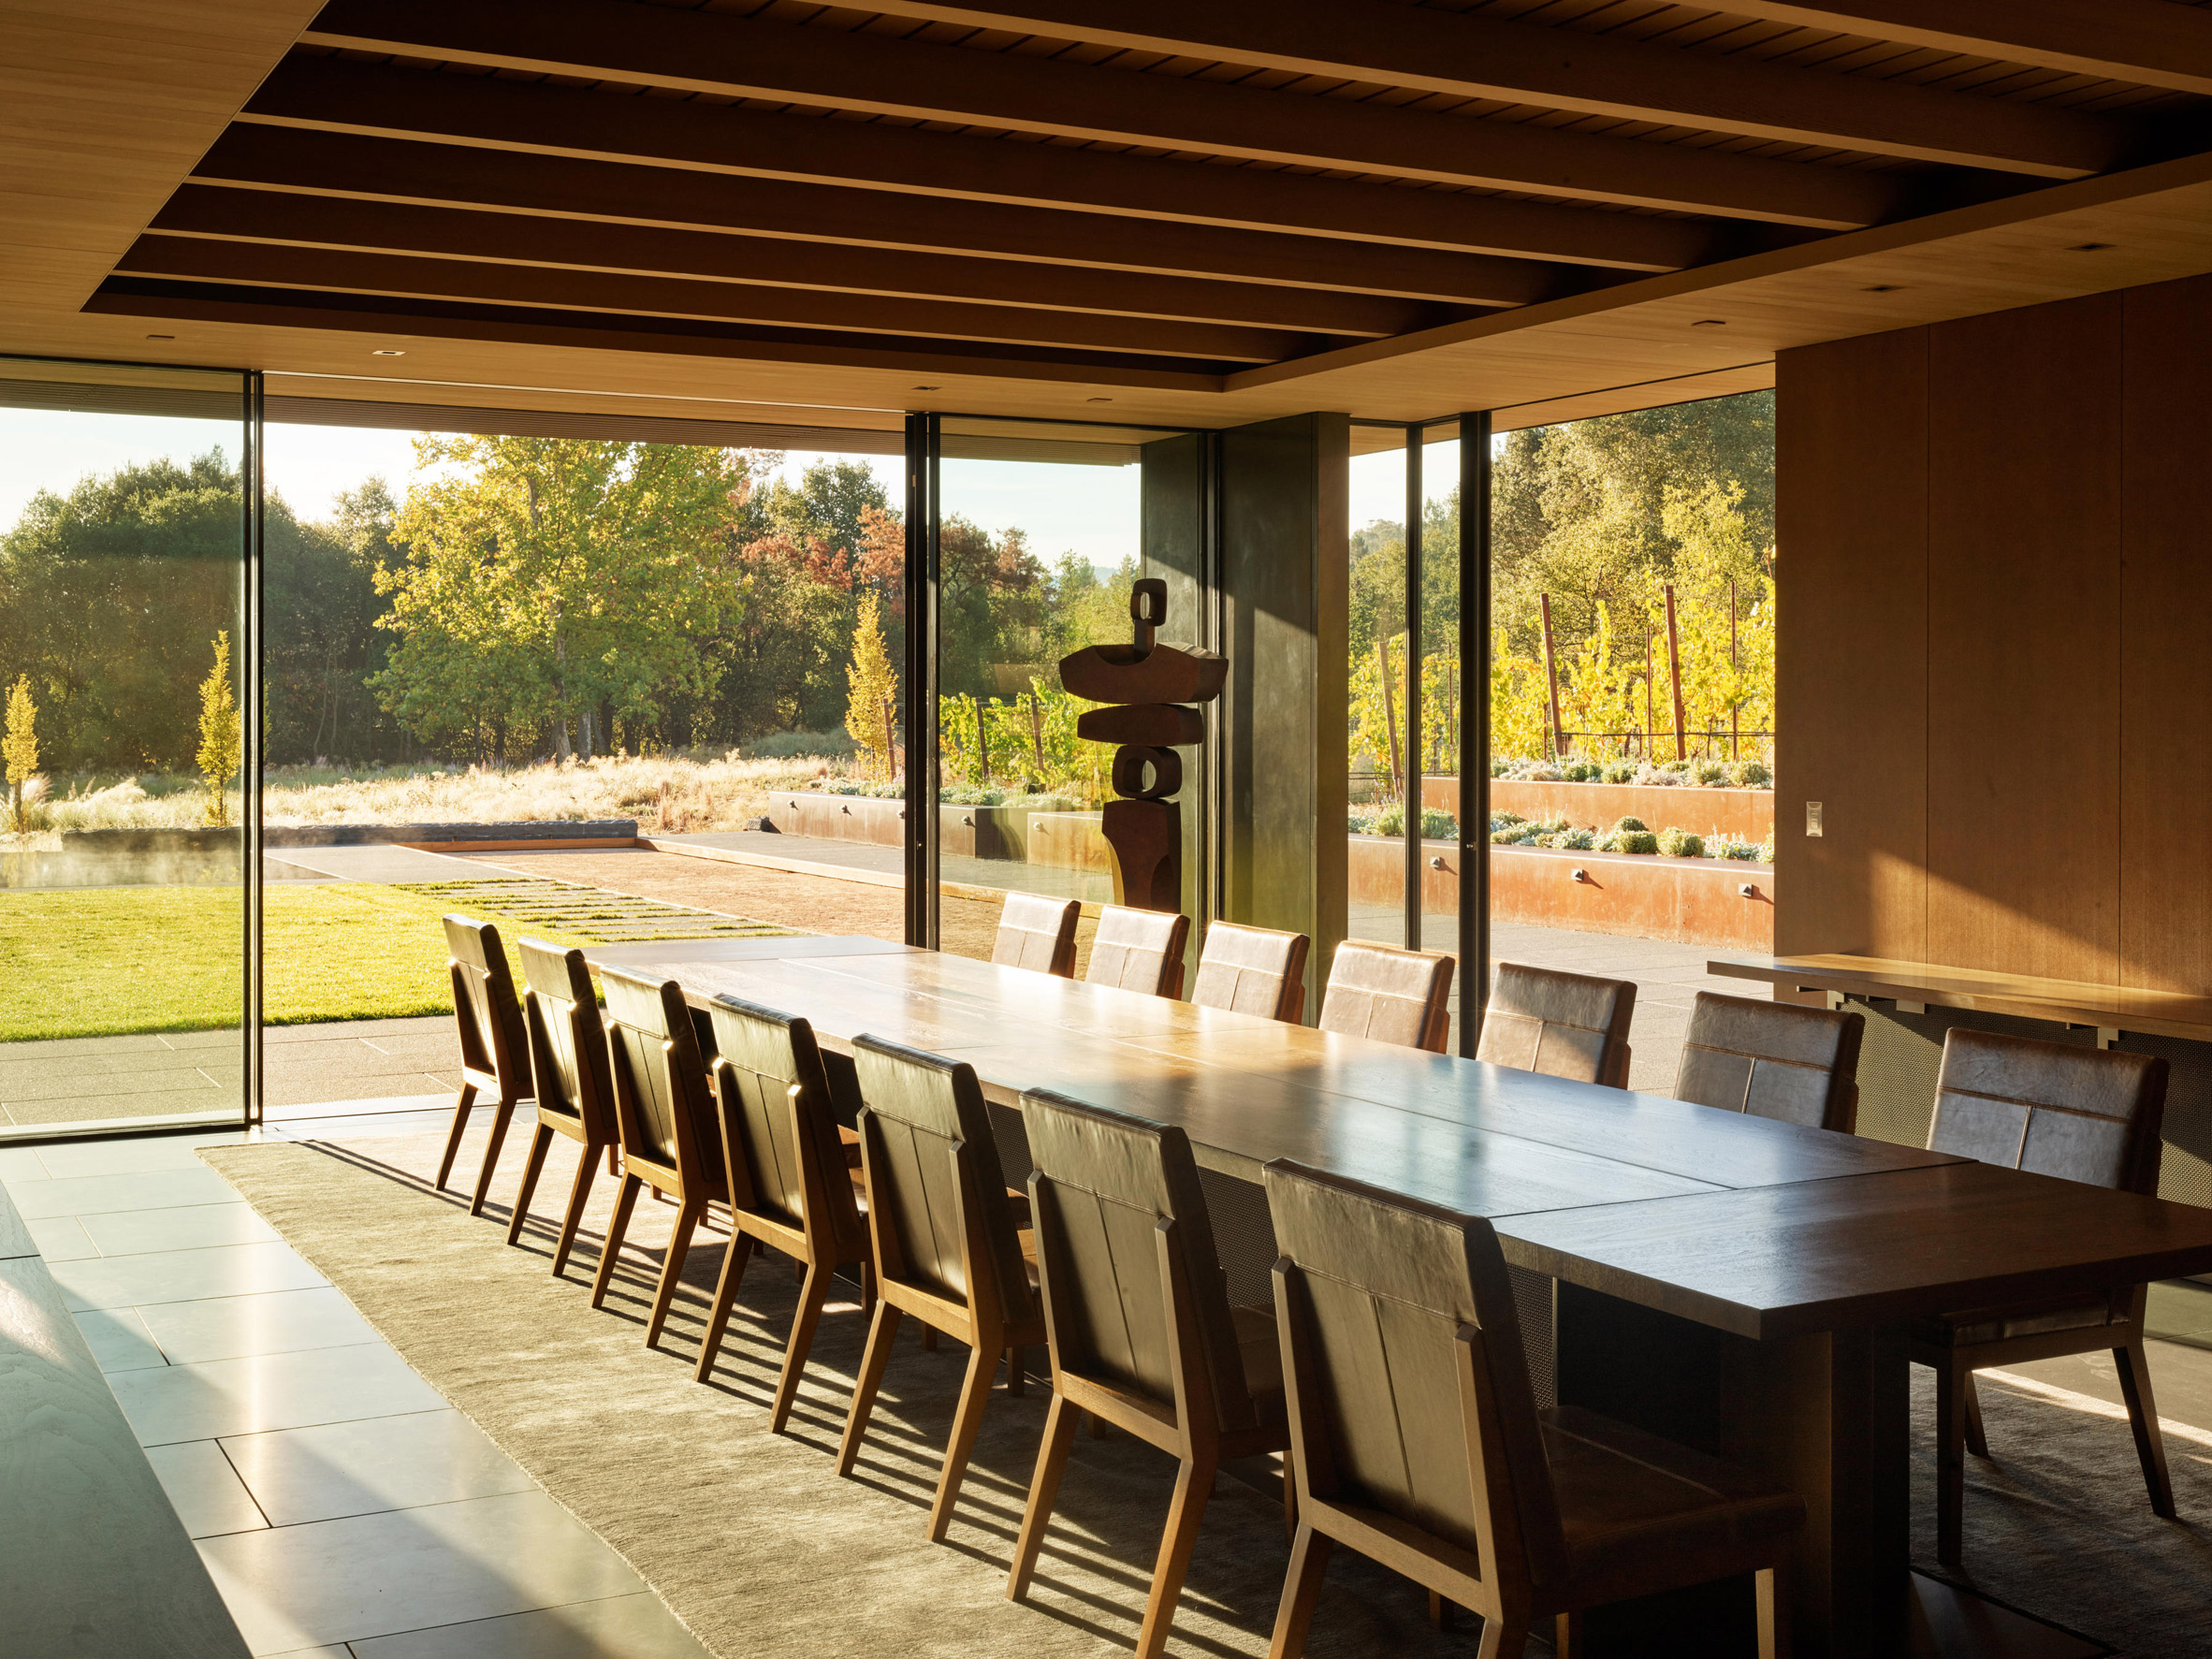 Earthy finishes were used for the house's interiors